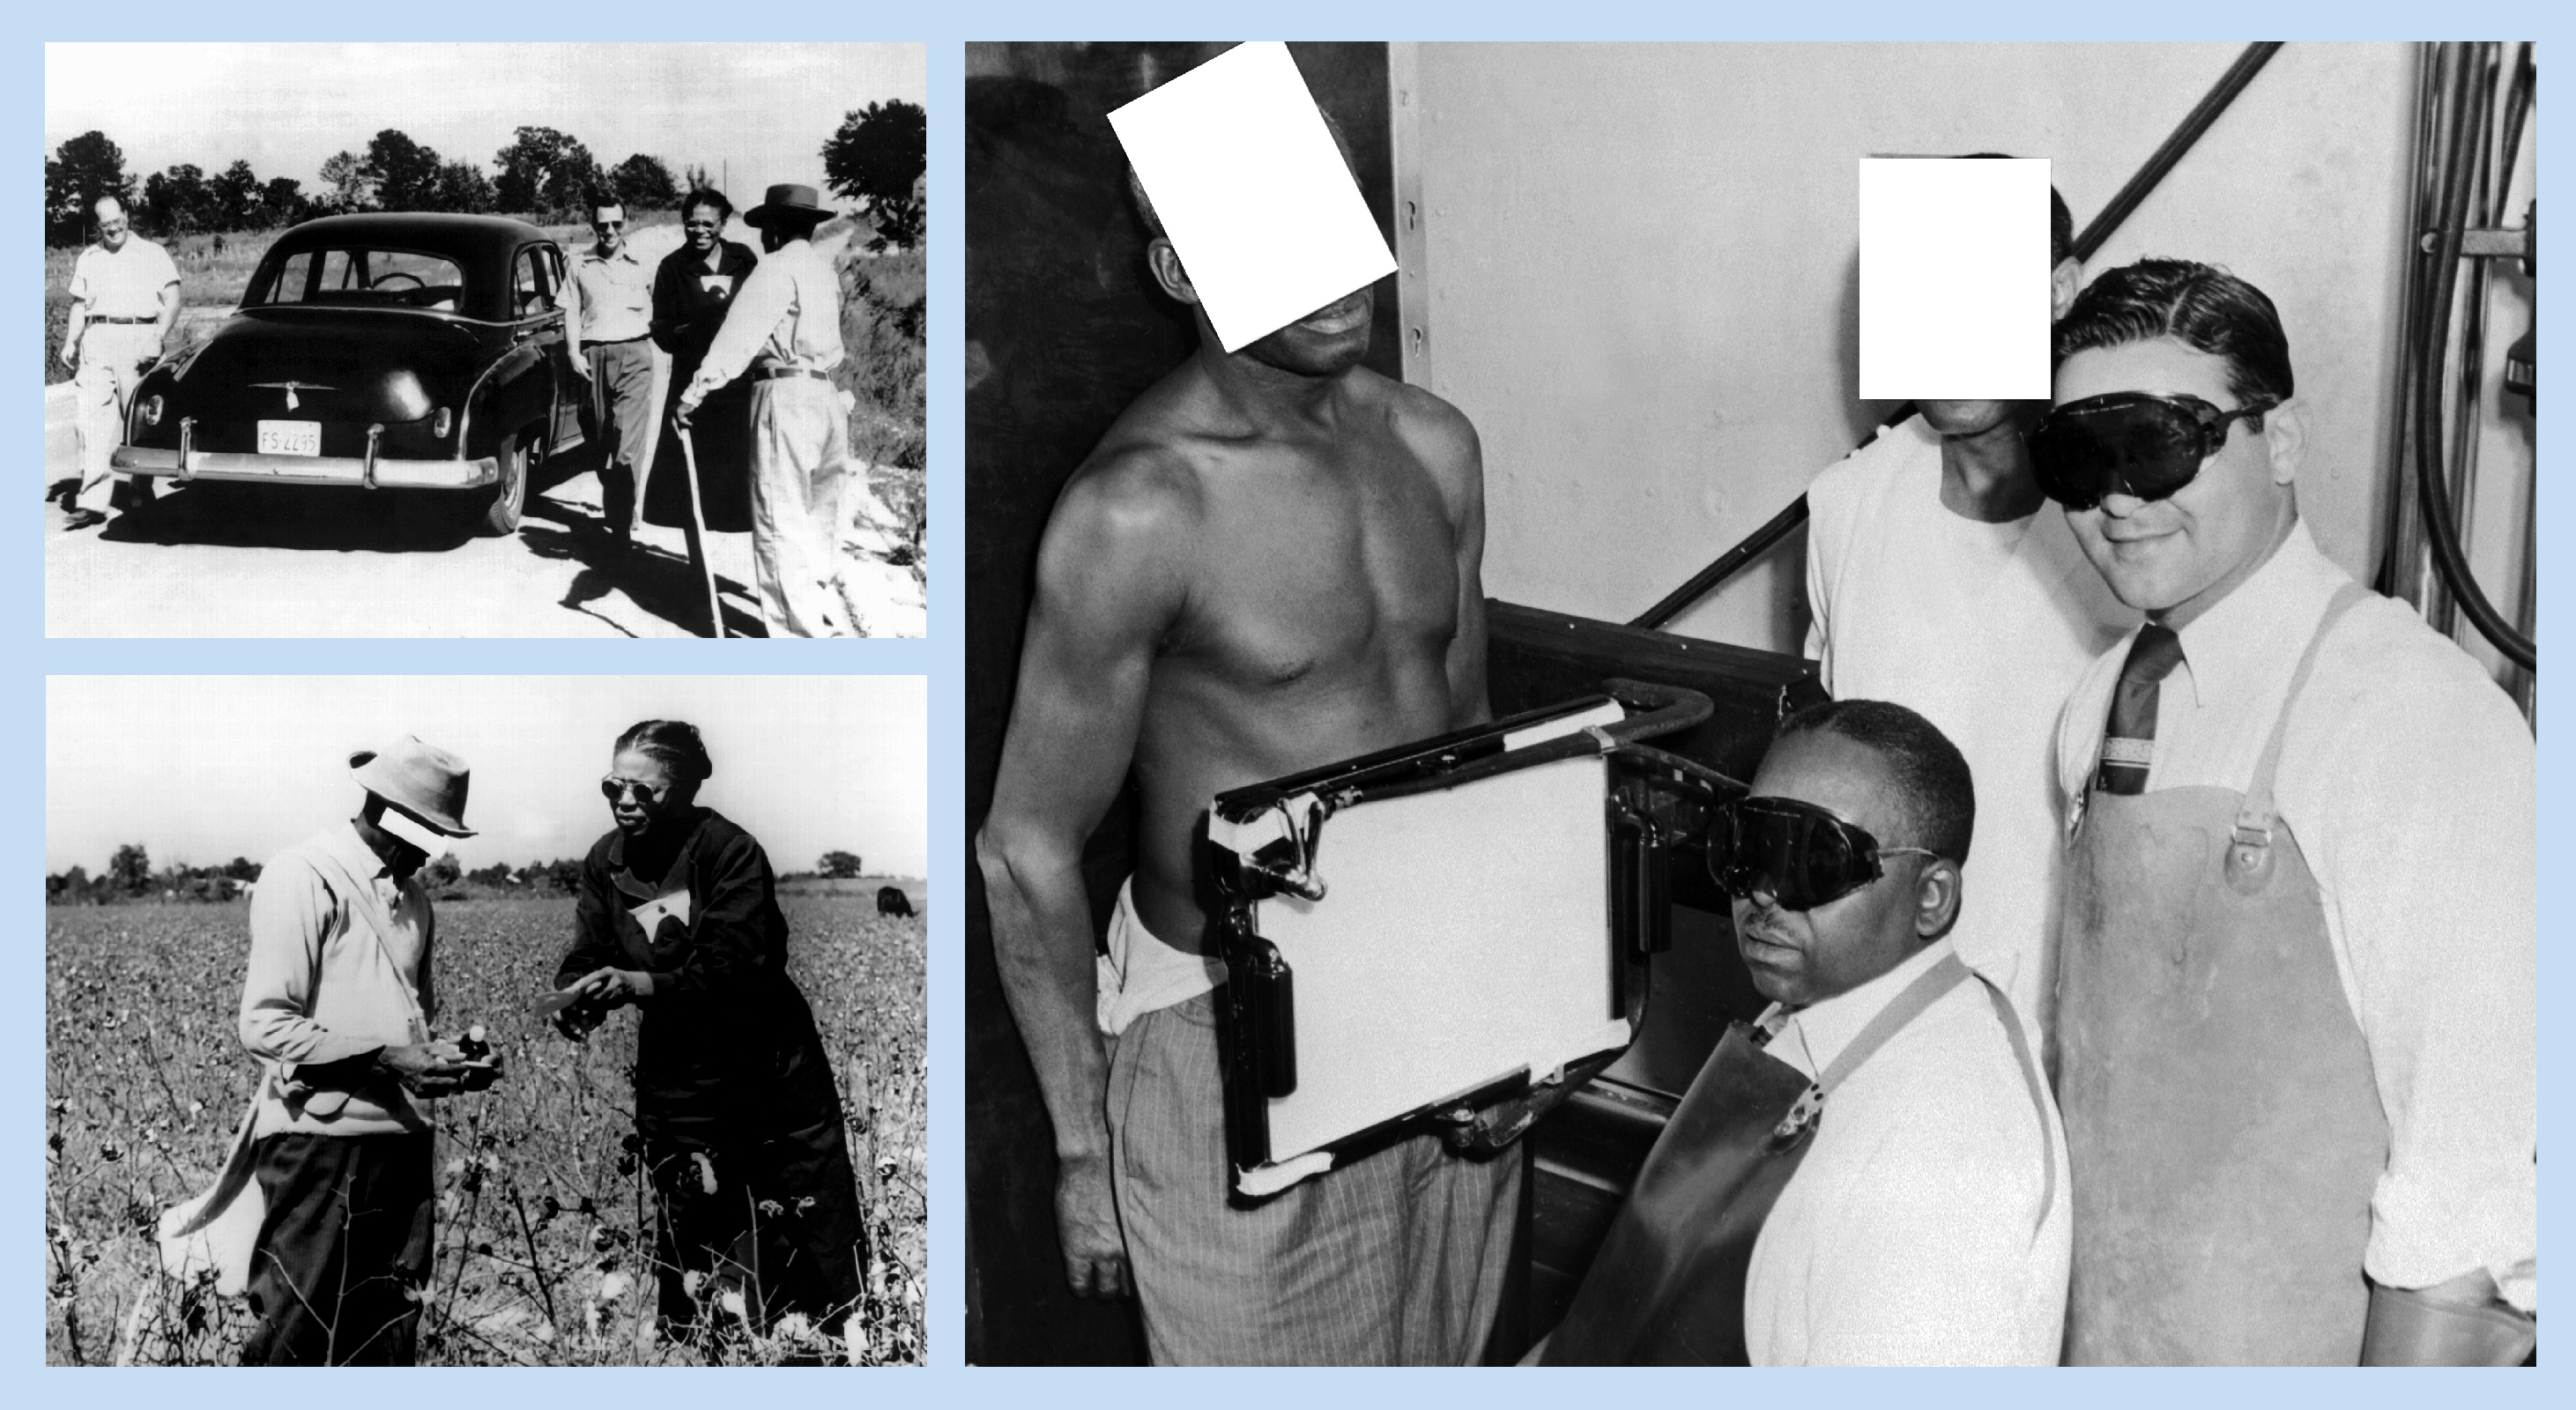 The photos shows health workers and trial participants. In one photo a man behind an X-ray screen whose face has been covered with a square to protect his identity.